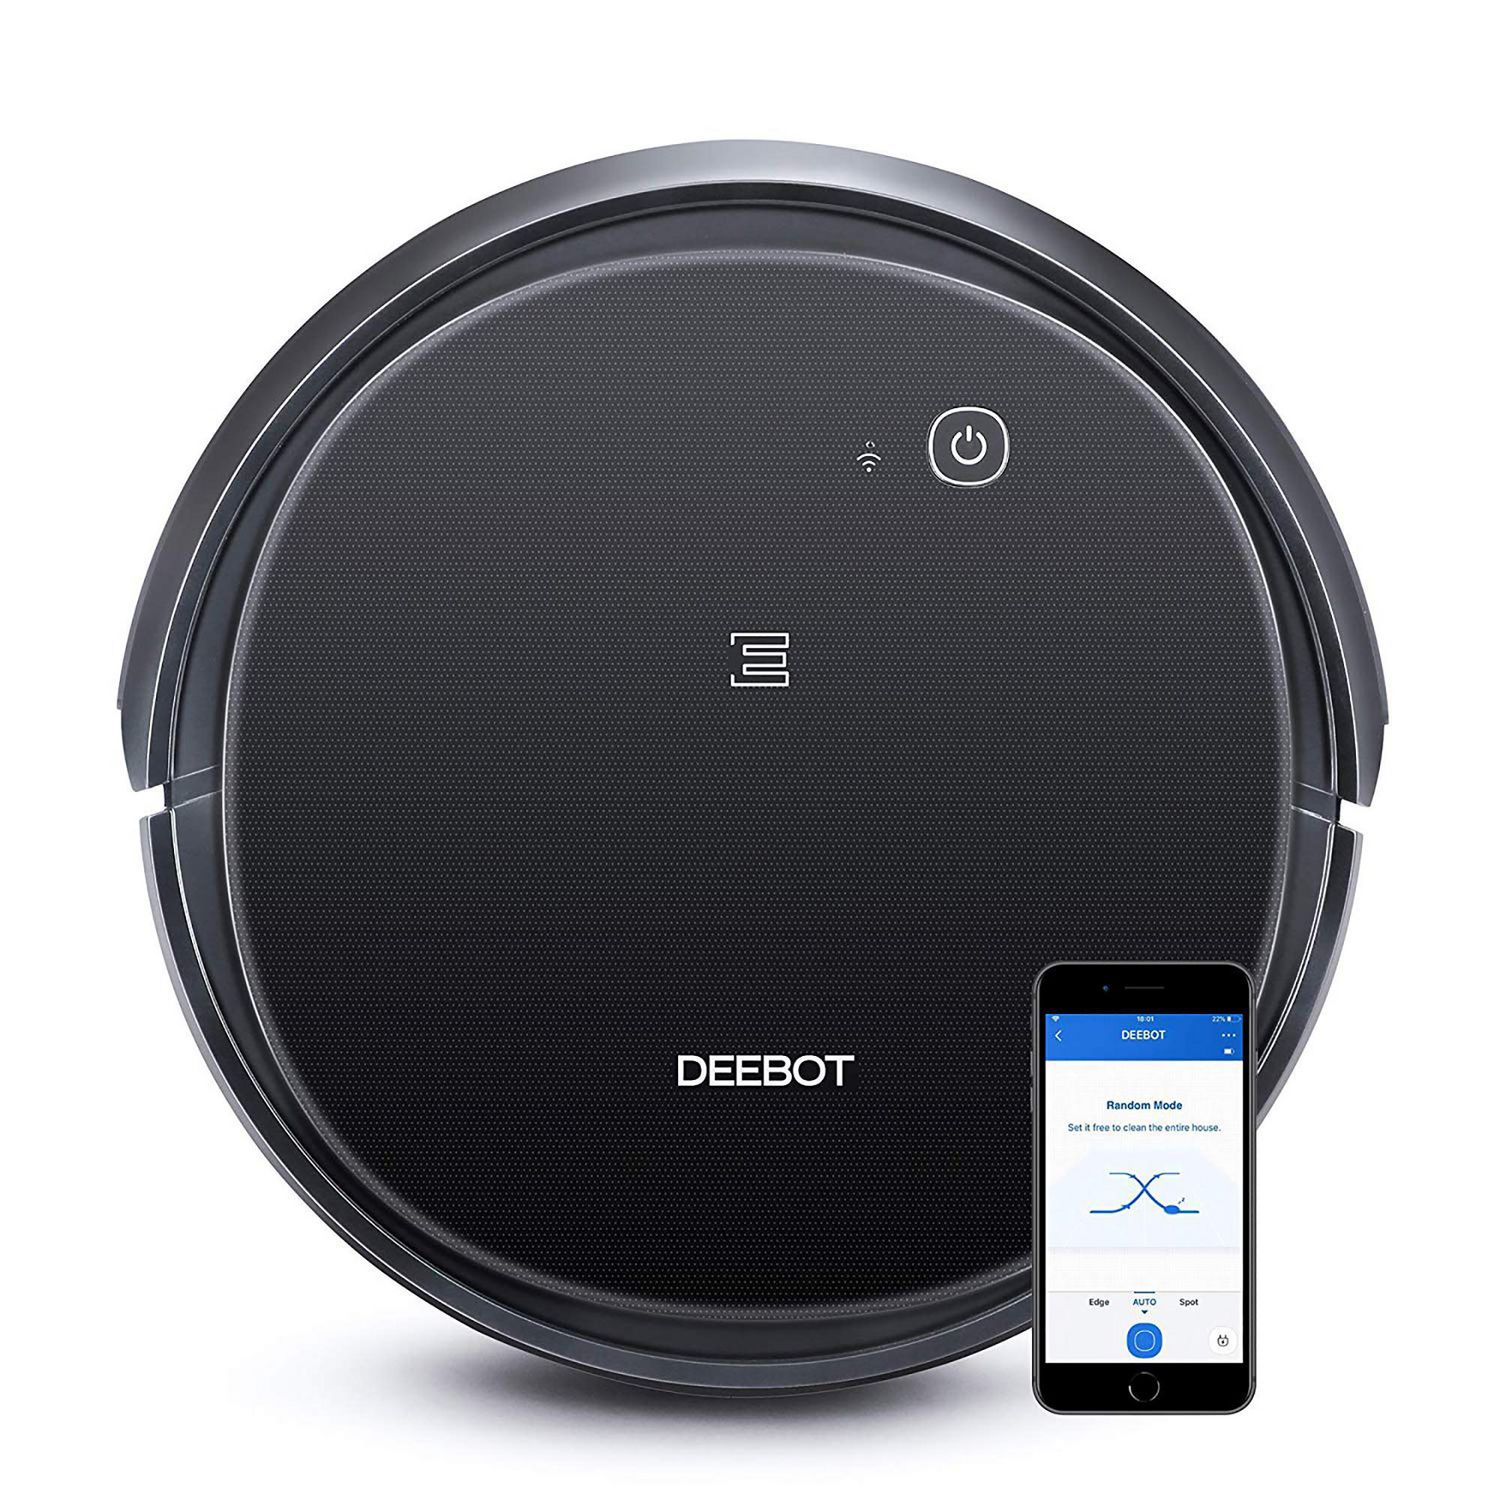 Best Robot Vacuums - Best Robot Vacuum for Carpet - black Ecovacs Deebot 500 robotic vacuum